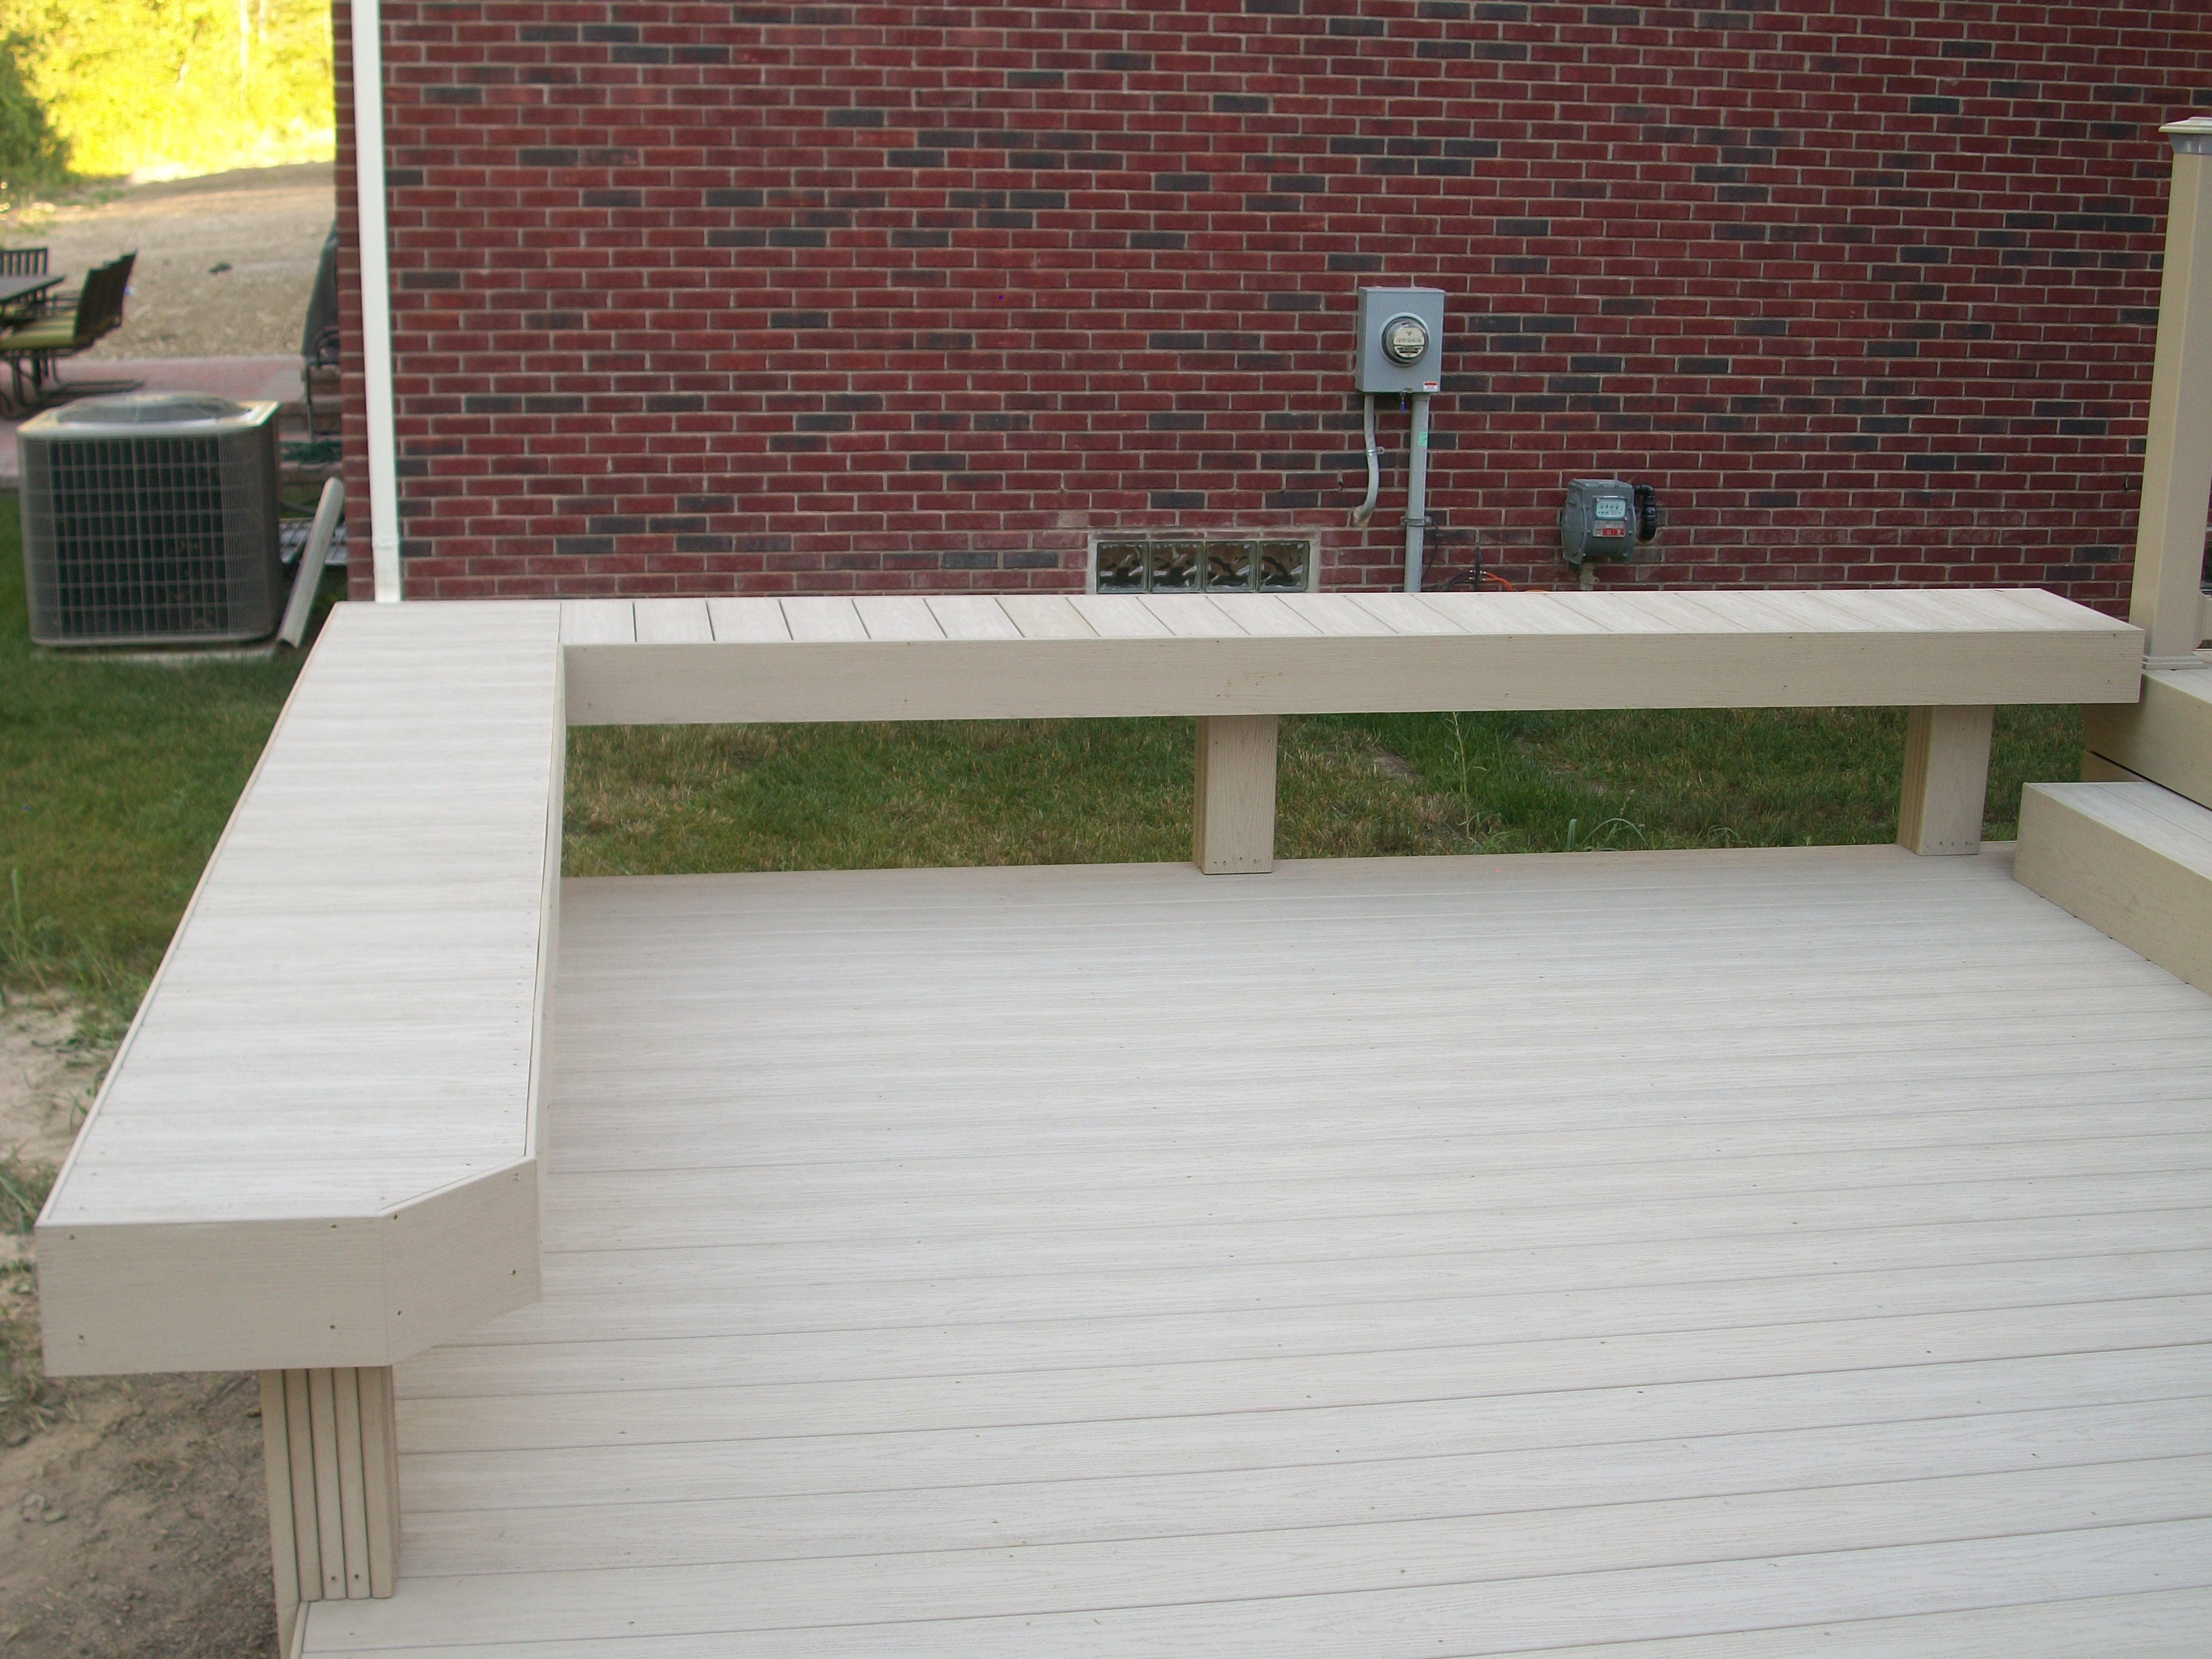 new-decking-with-lighting-7